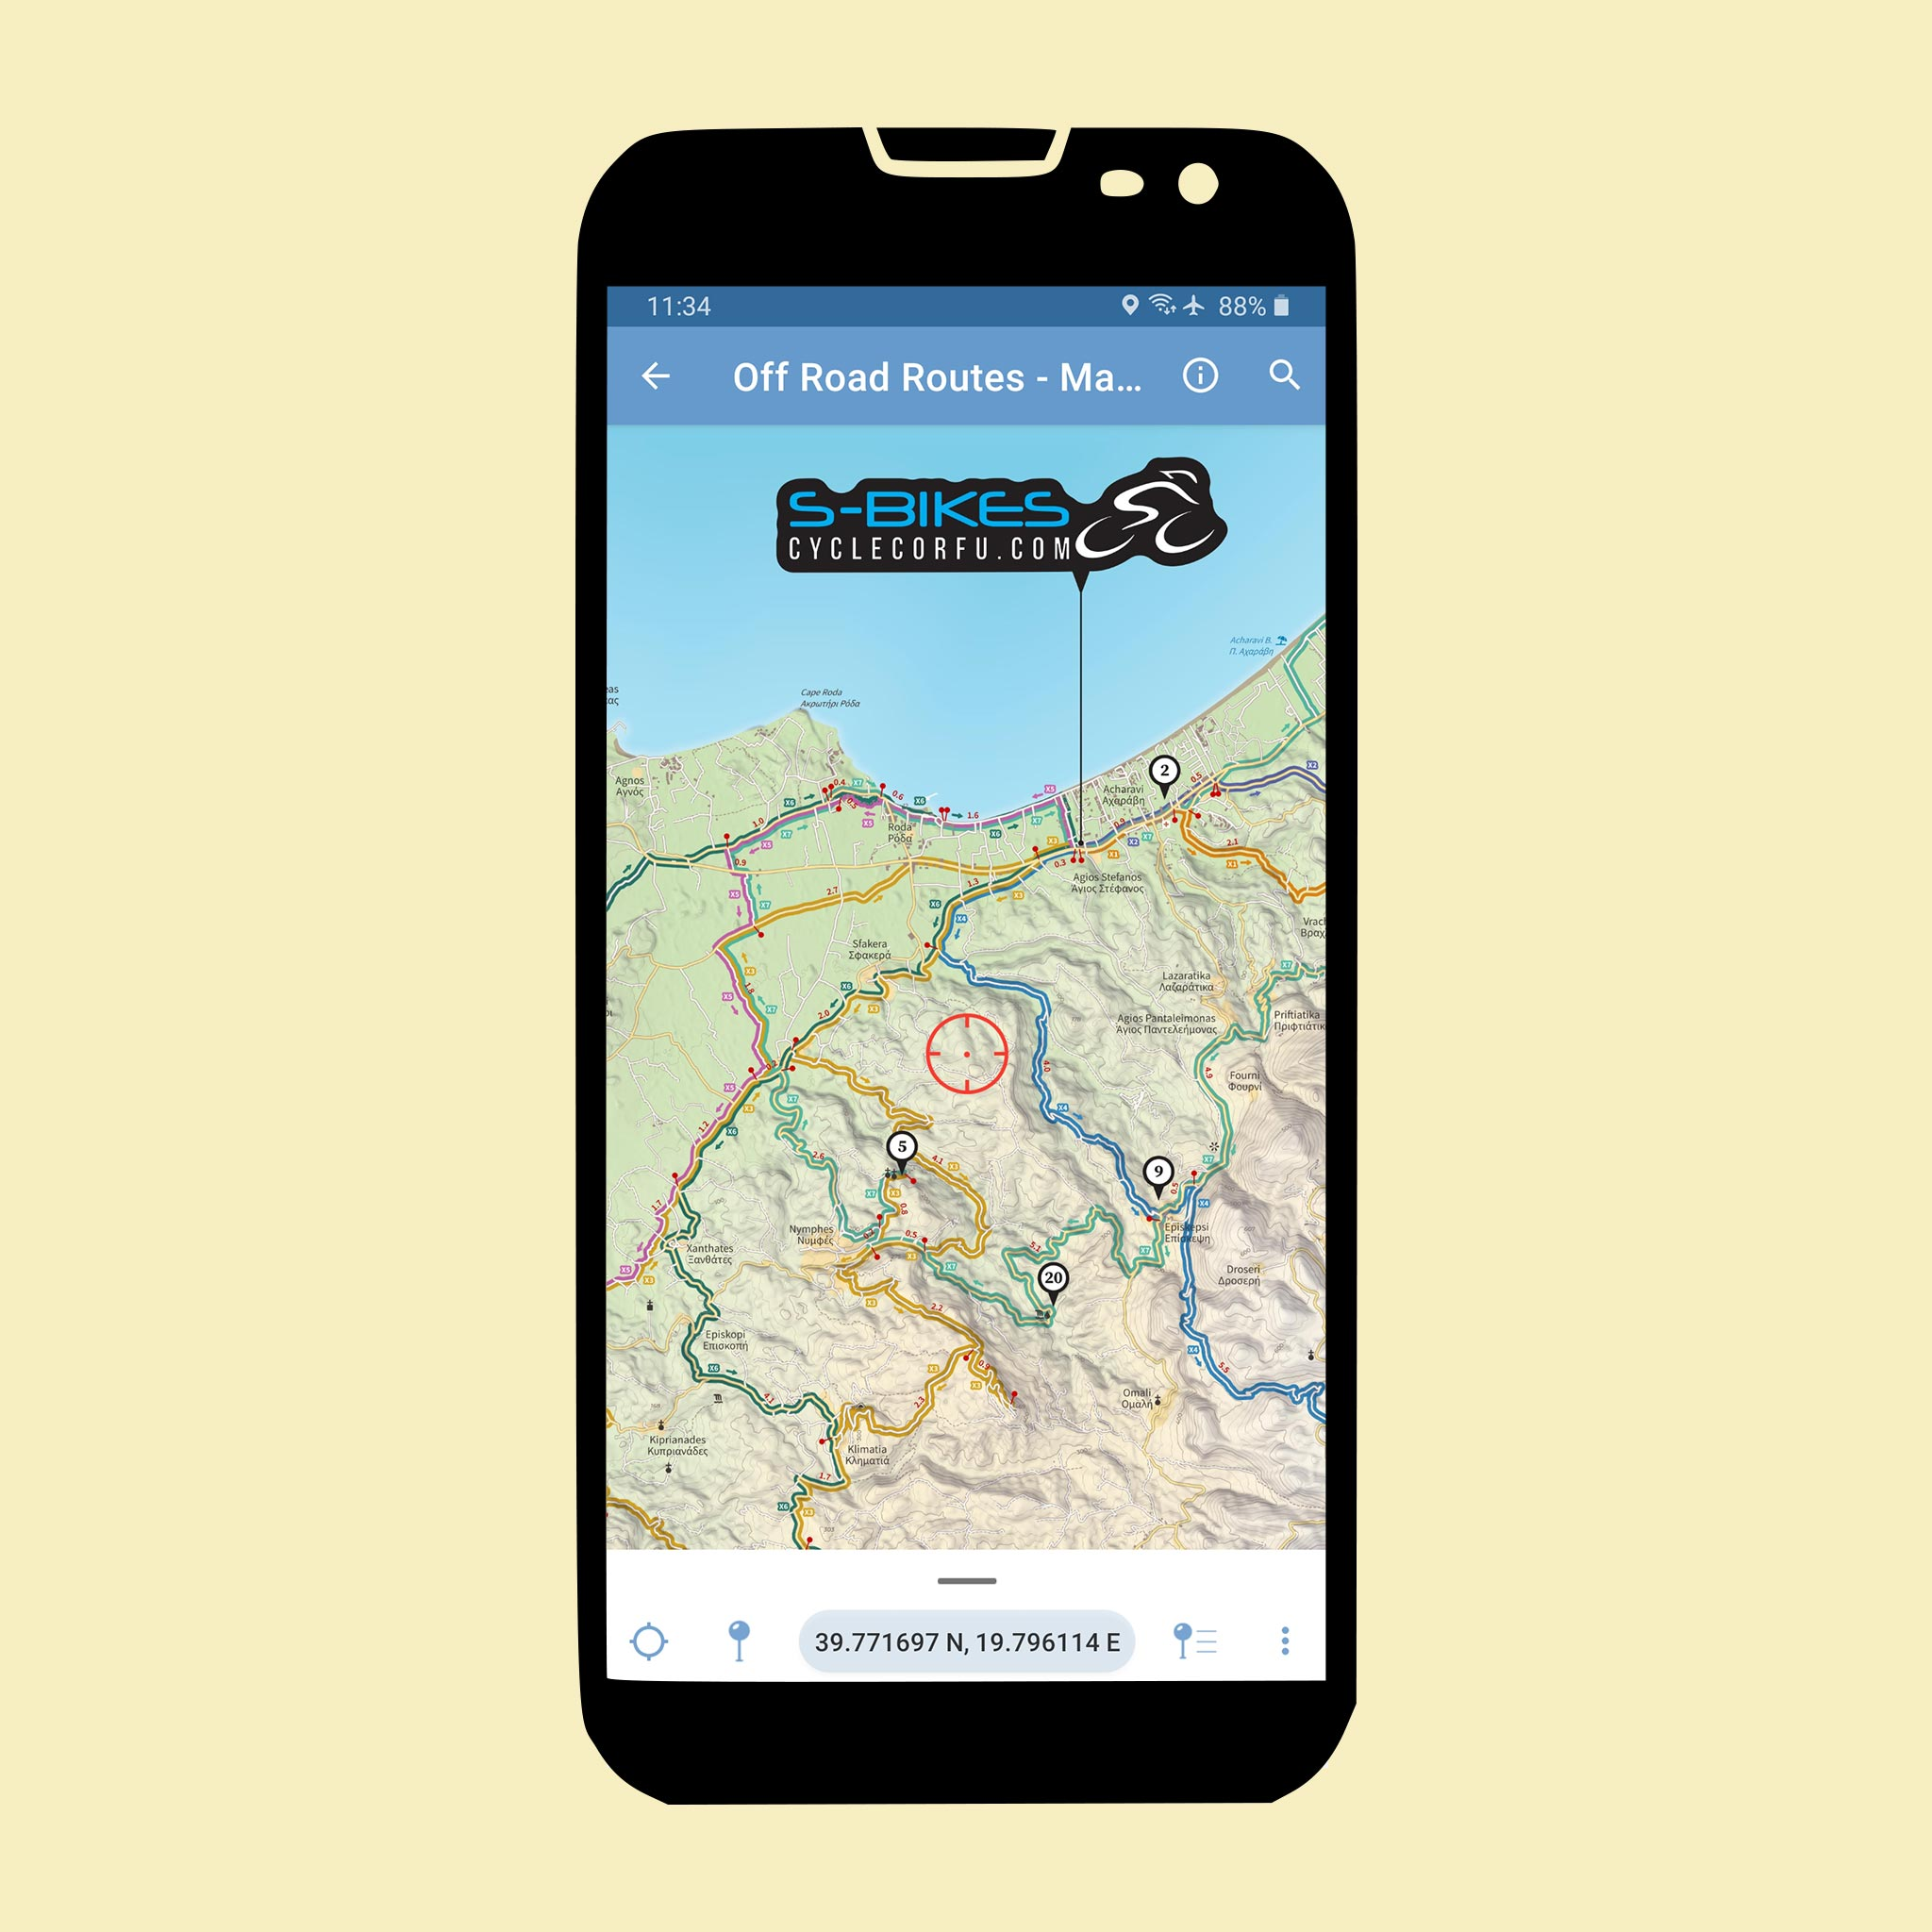 S-Bikes Cycle Corfu - Off Road Routes - Avenza Maps app